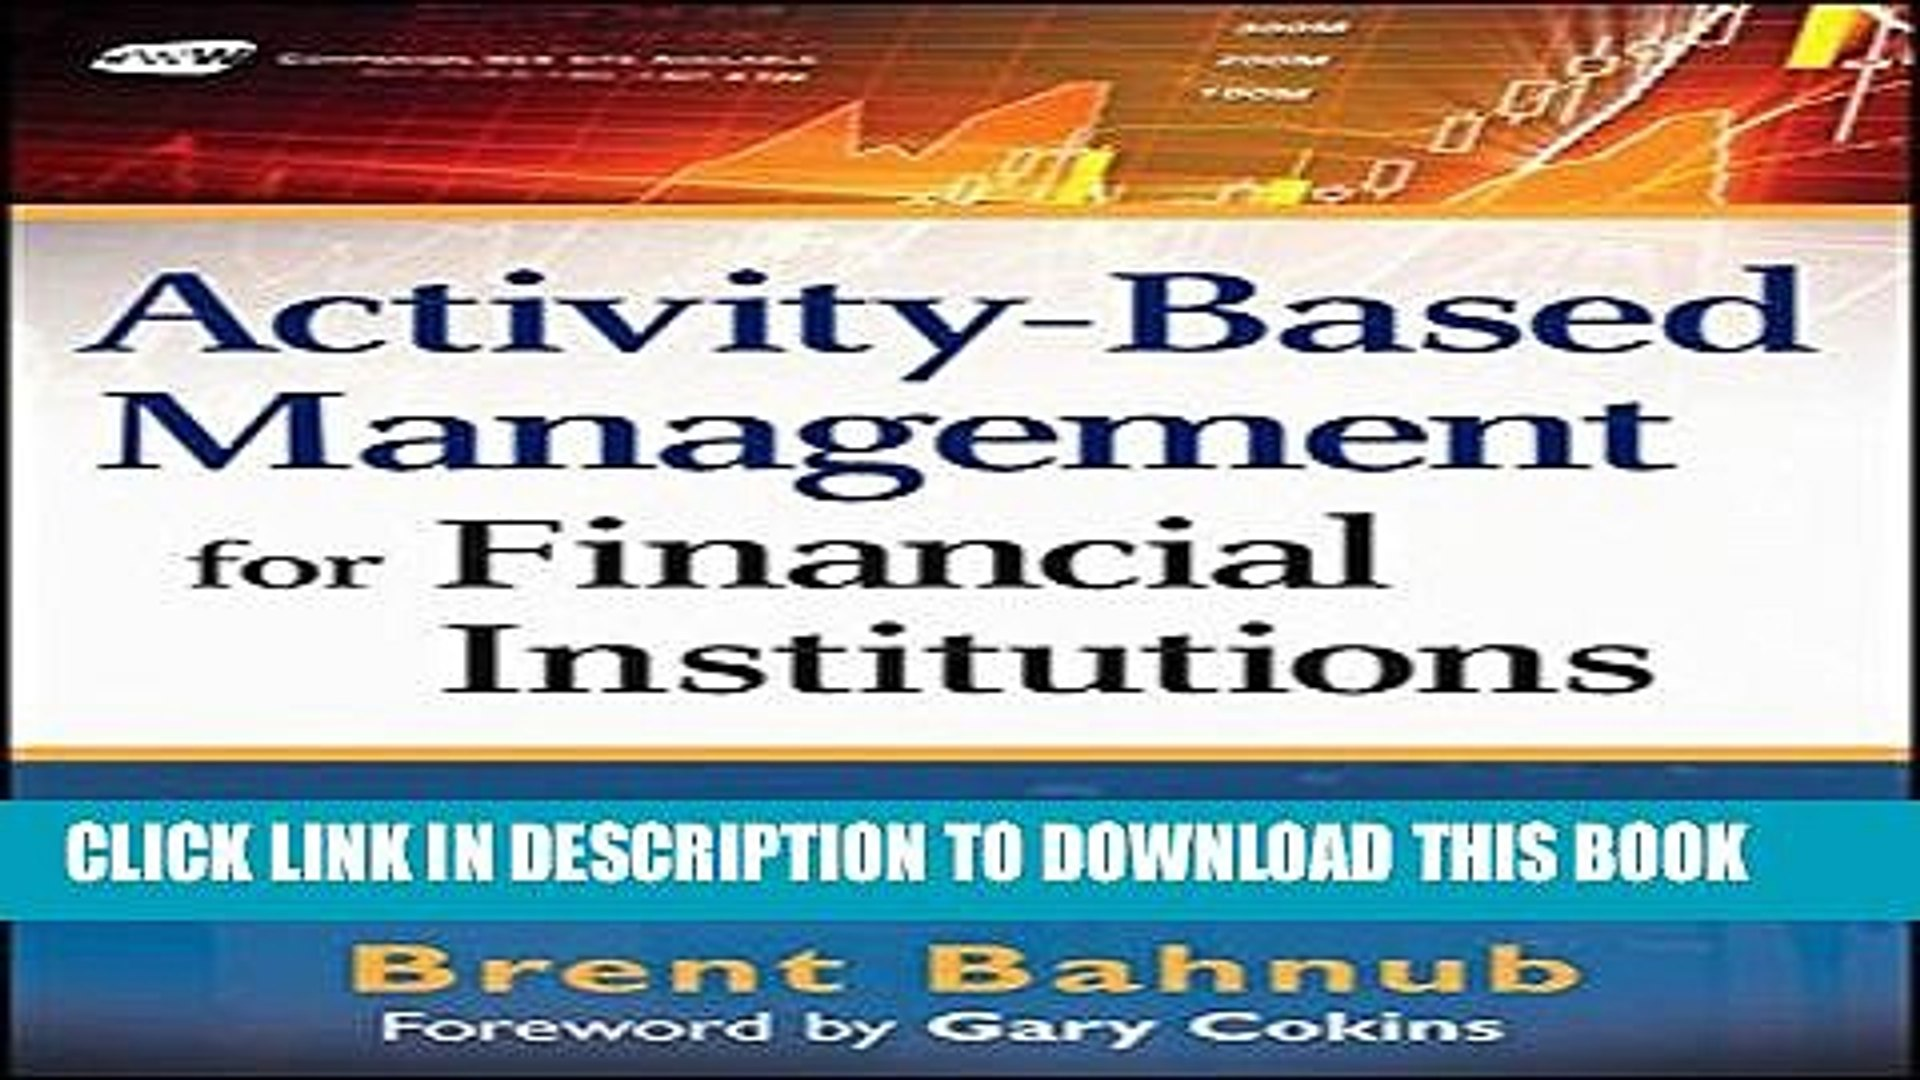 [PDF] Activity-Based Management for Financial Institutions: Driving Bottom-Line Results Popular